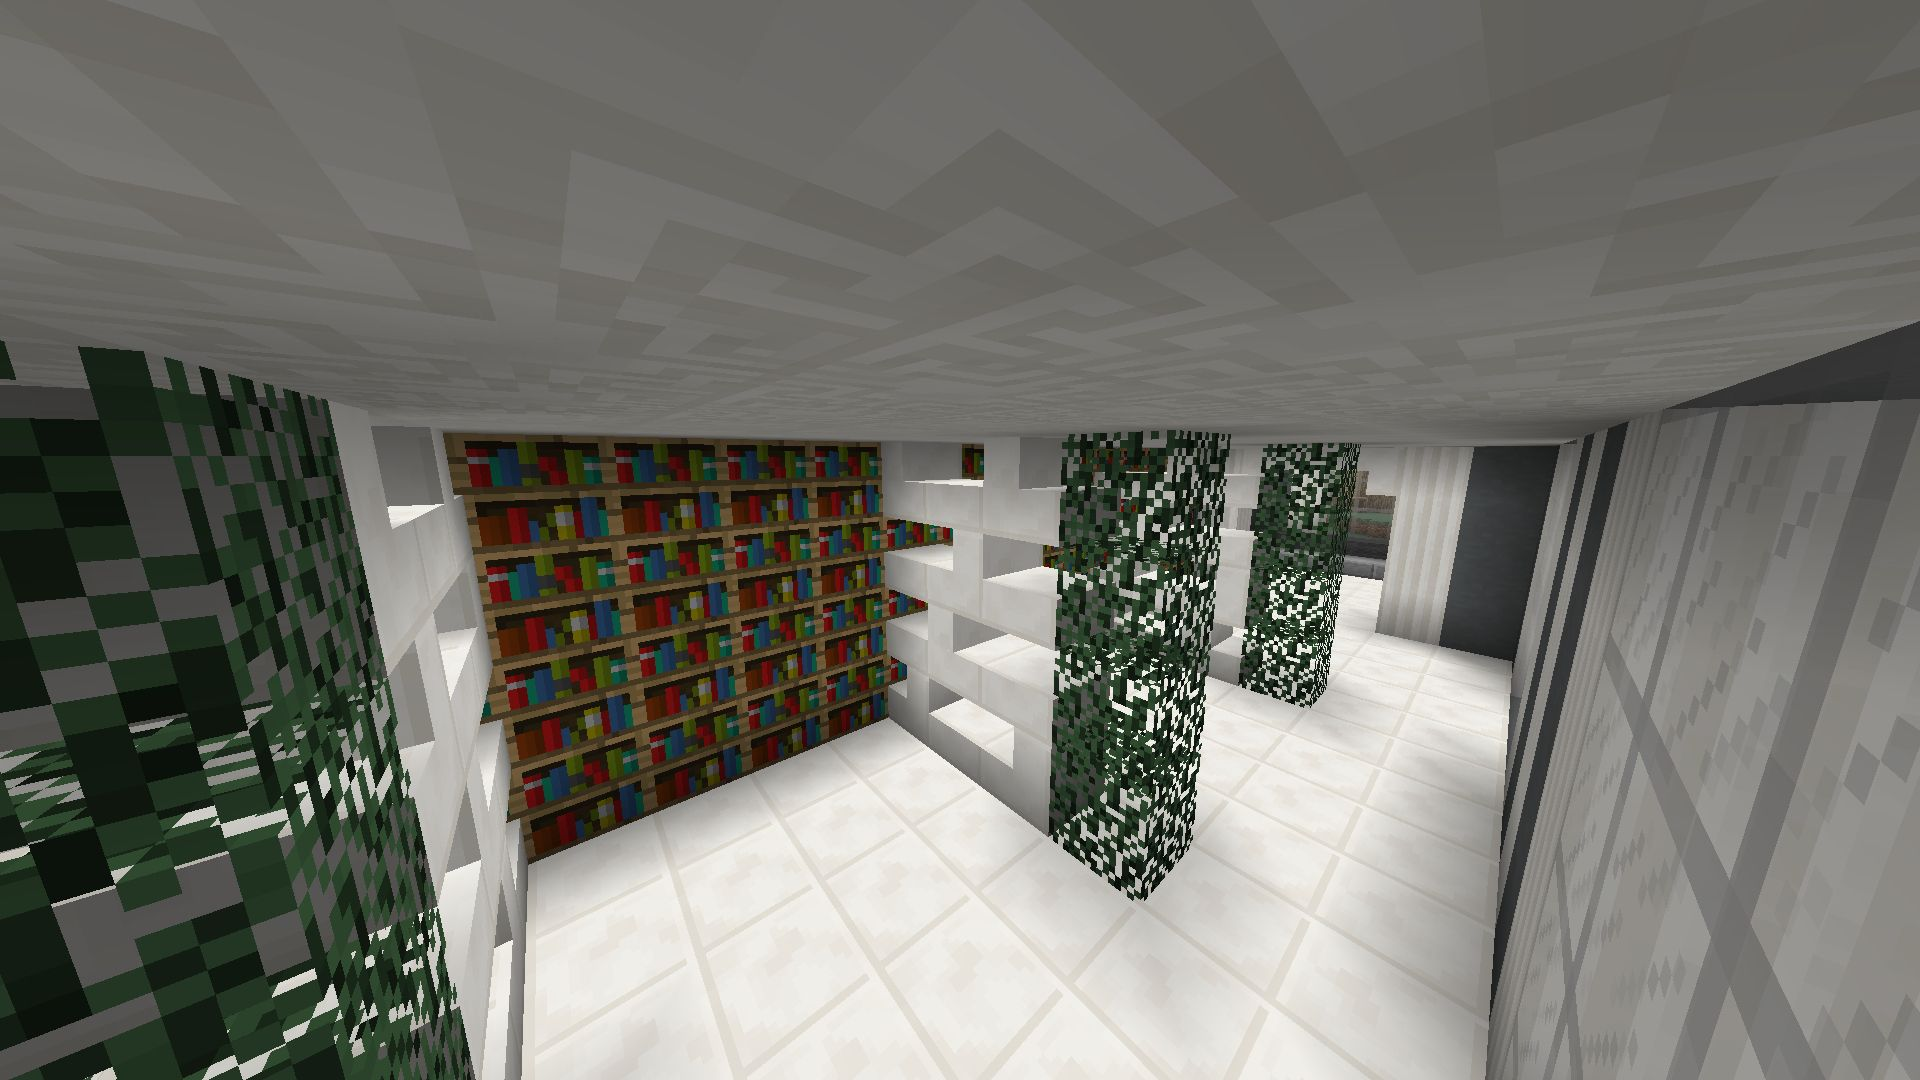 Minecraft library - Walls made from quartz slabs and quartz